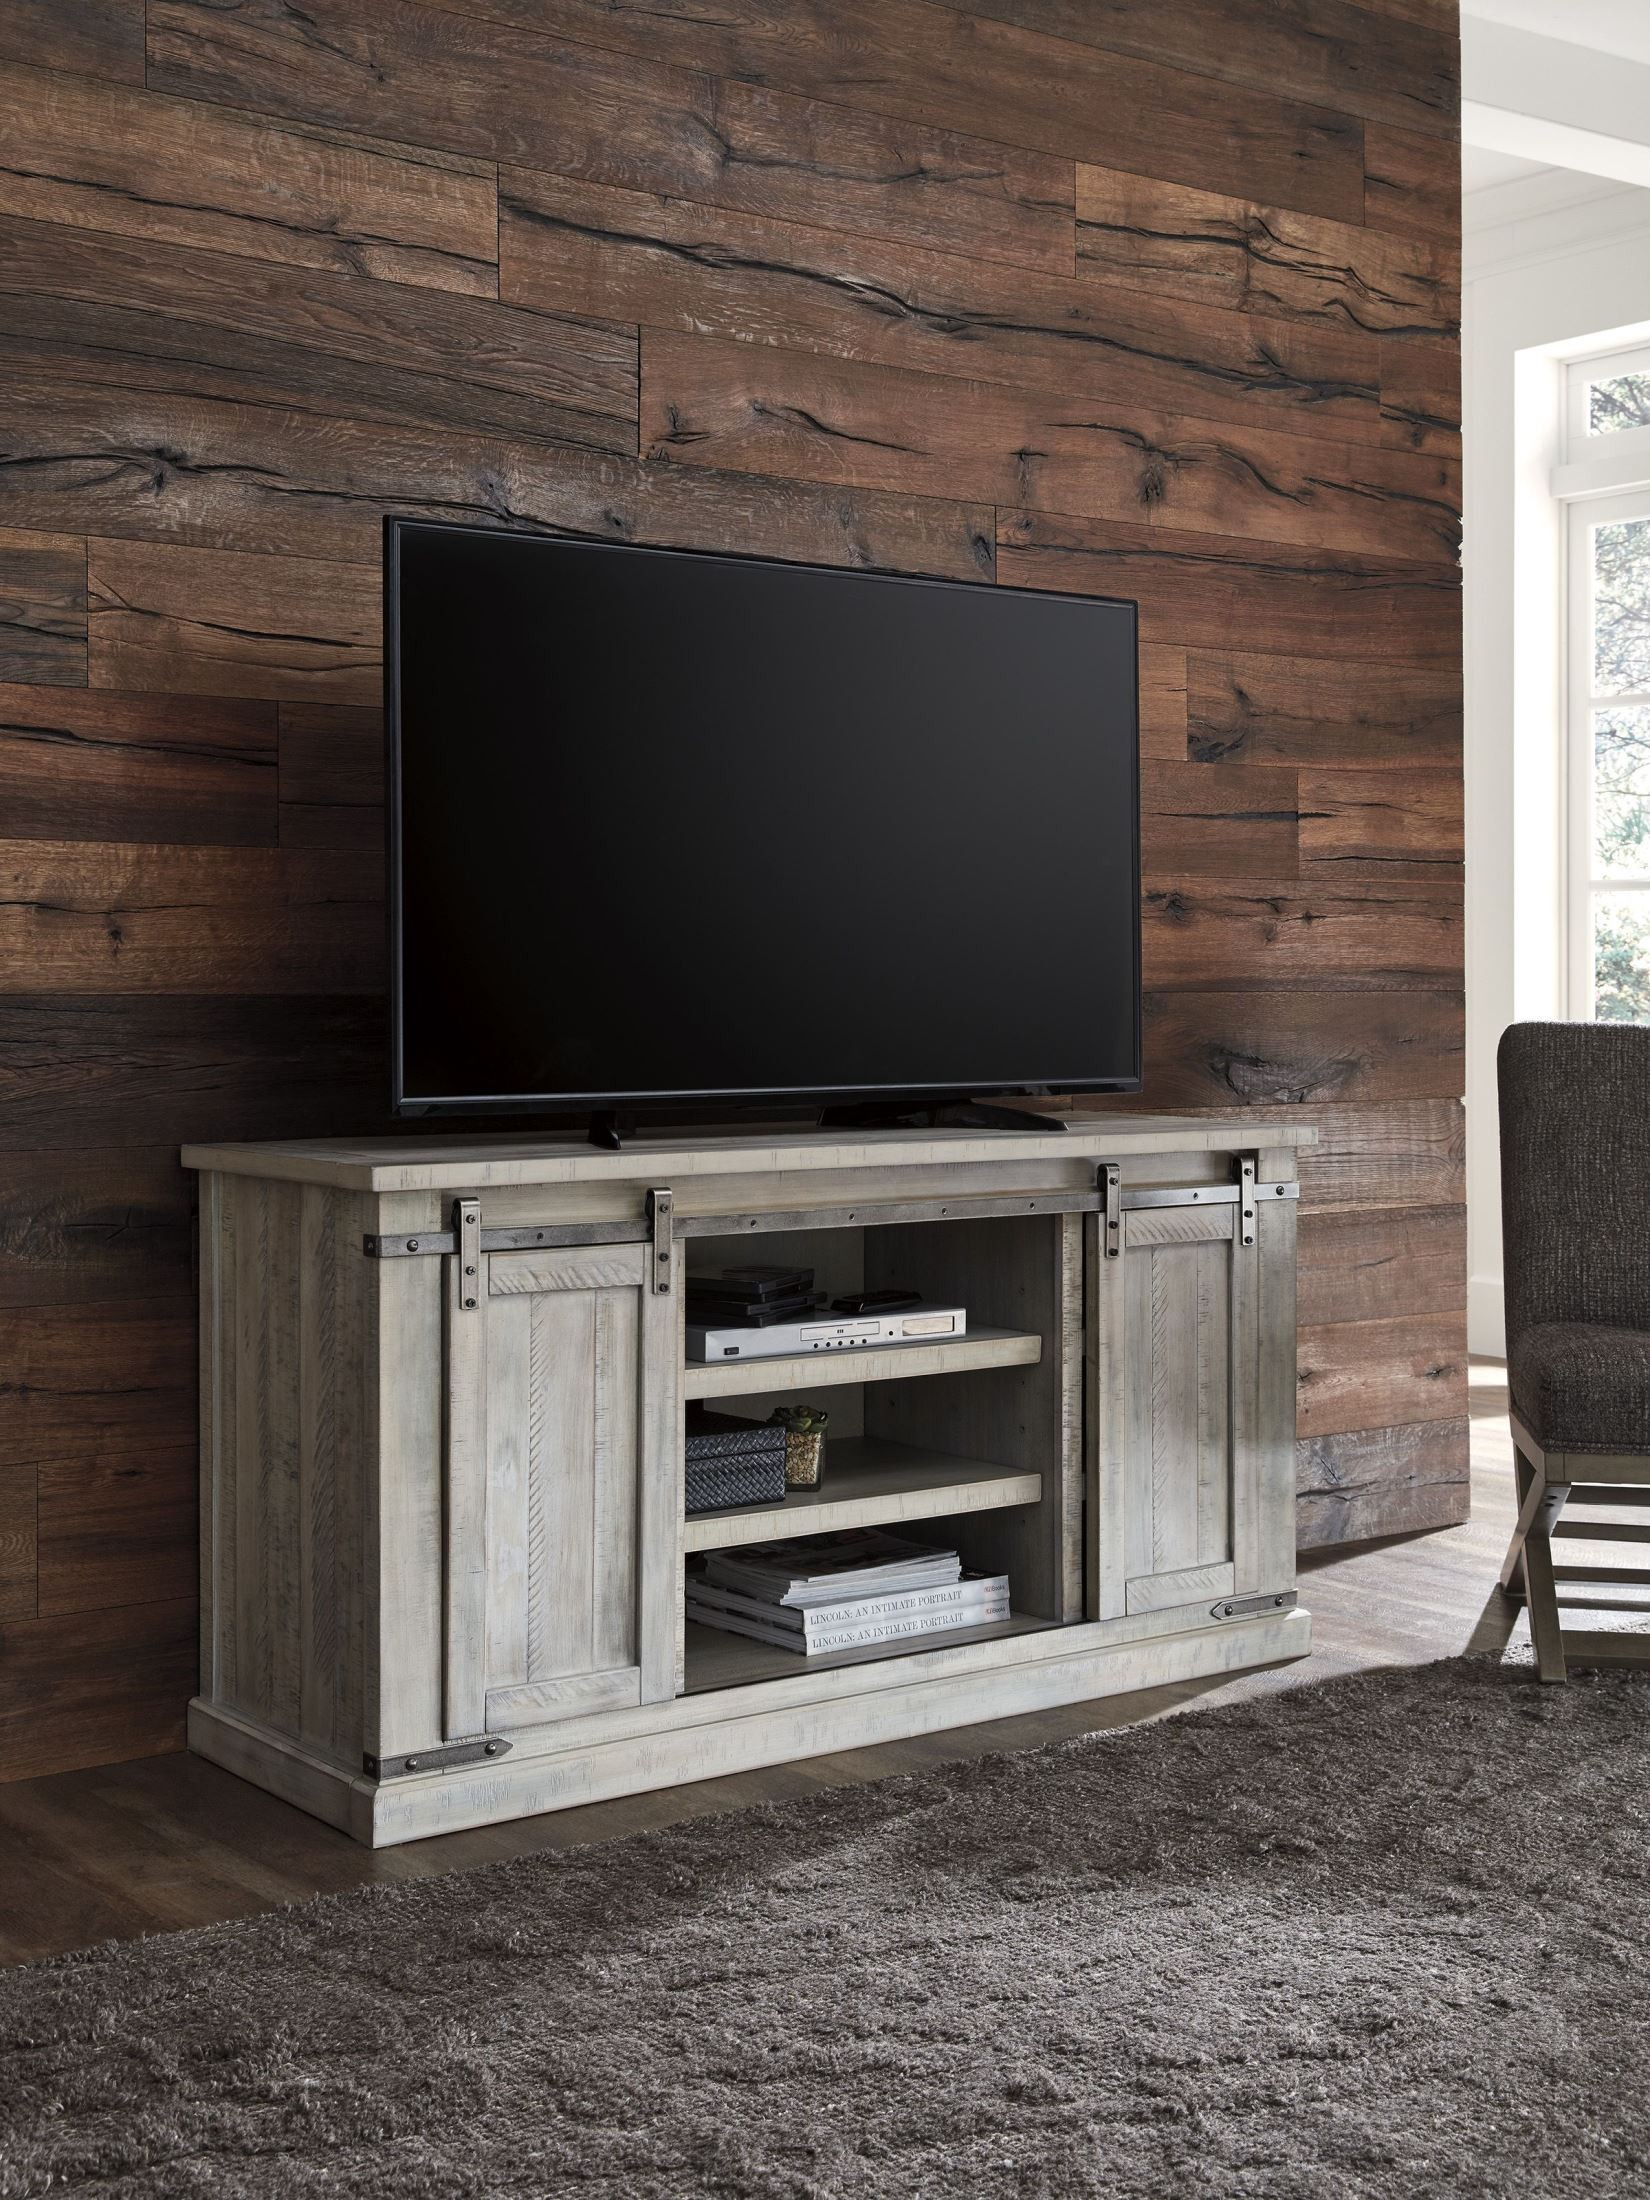 Carynhurst White Wash Large Tv Stand From Ashley | Coleman Furniture Pertaining To Vista 68 Inch Tv Stands (View 20 of 30)